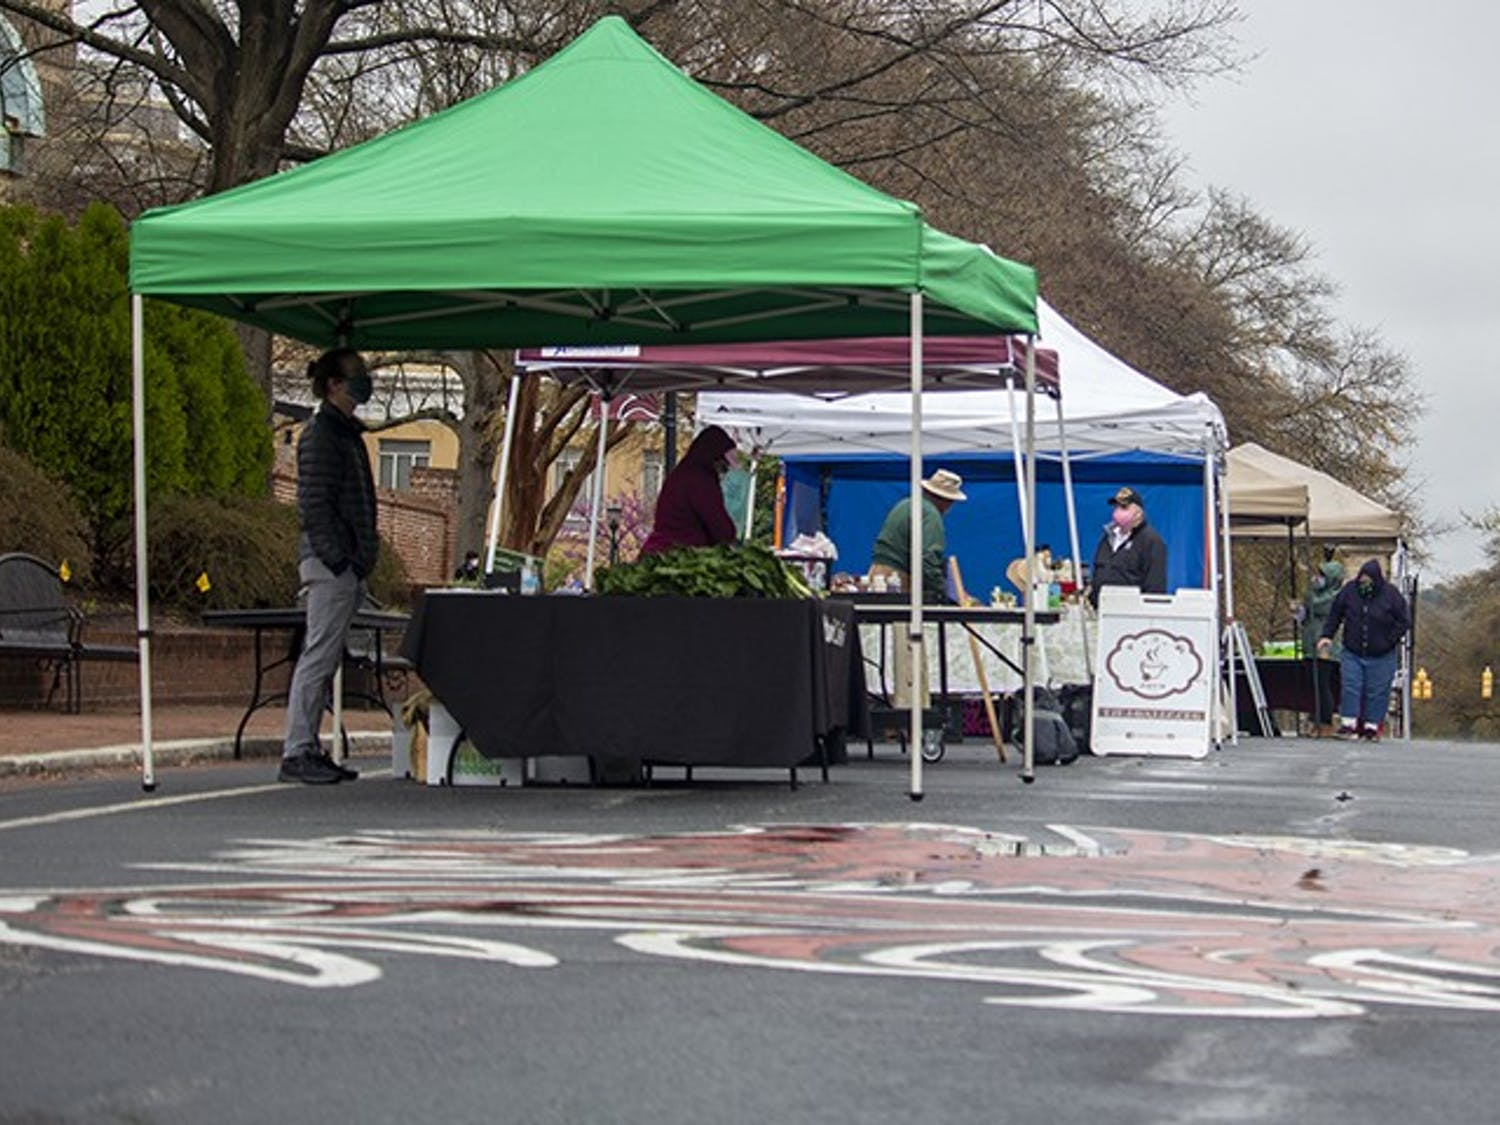 Vendors and campus organizations such as the Carolina Food Company and Sustainable Carolina return to Greene Street with fresh produce, succulents and more at the recently revived Healthy Carolina Farmers Market. The market is on Greene Street every Tuesday from 8 a.m. to 2 p.m.